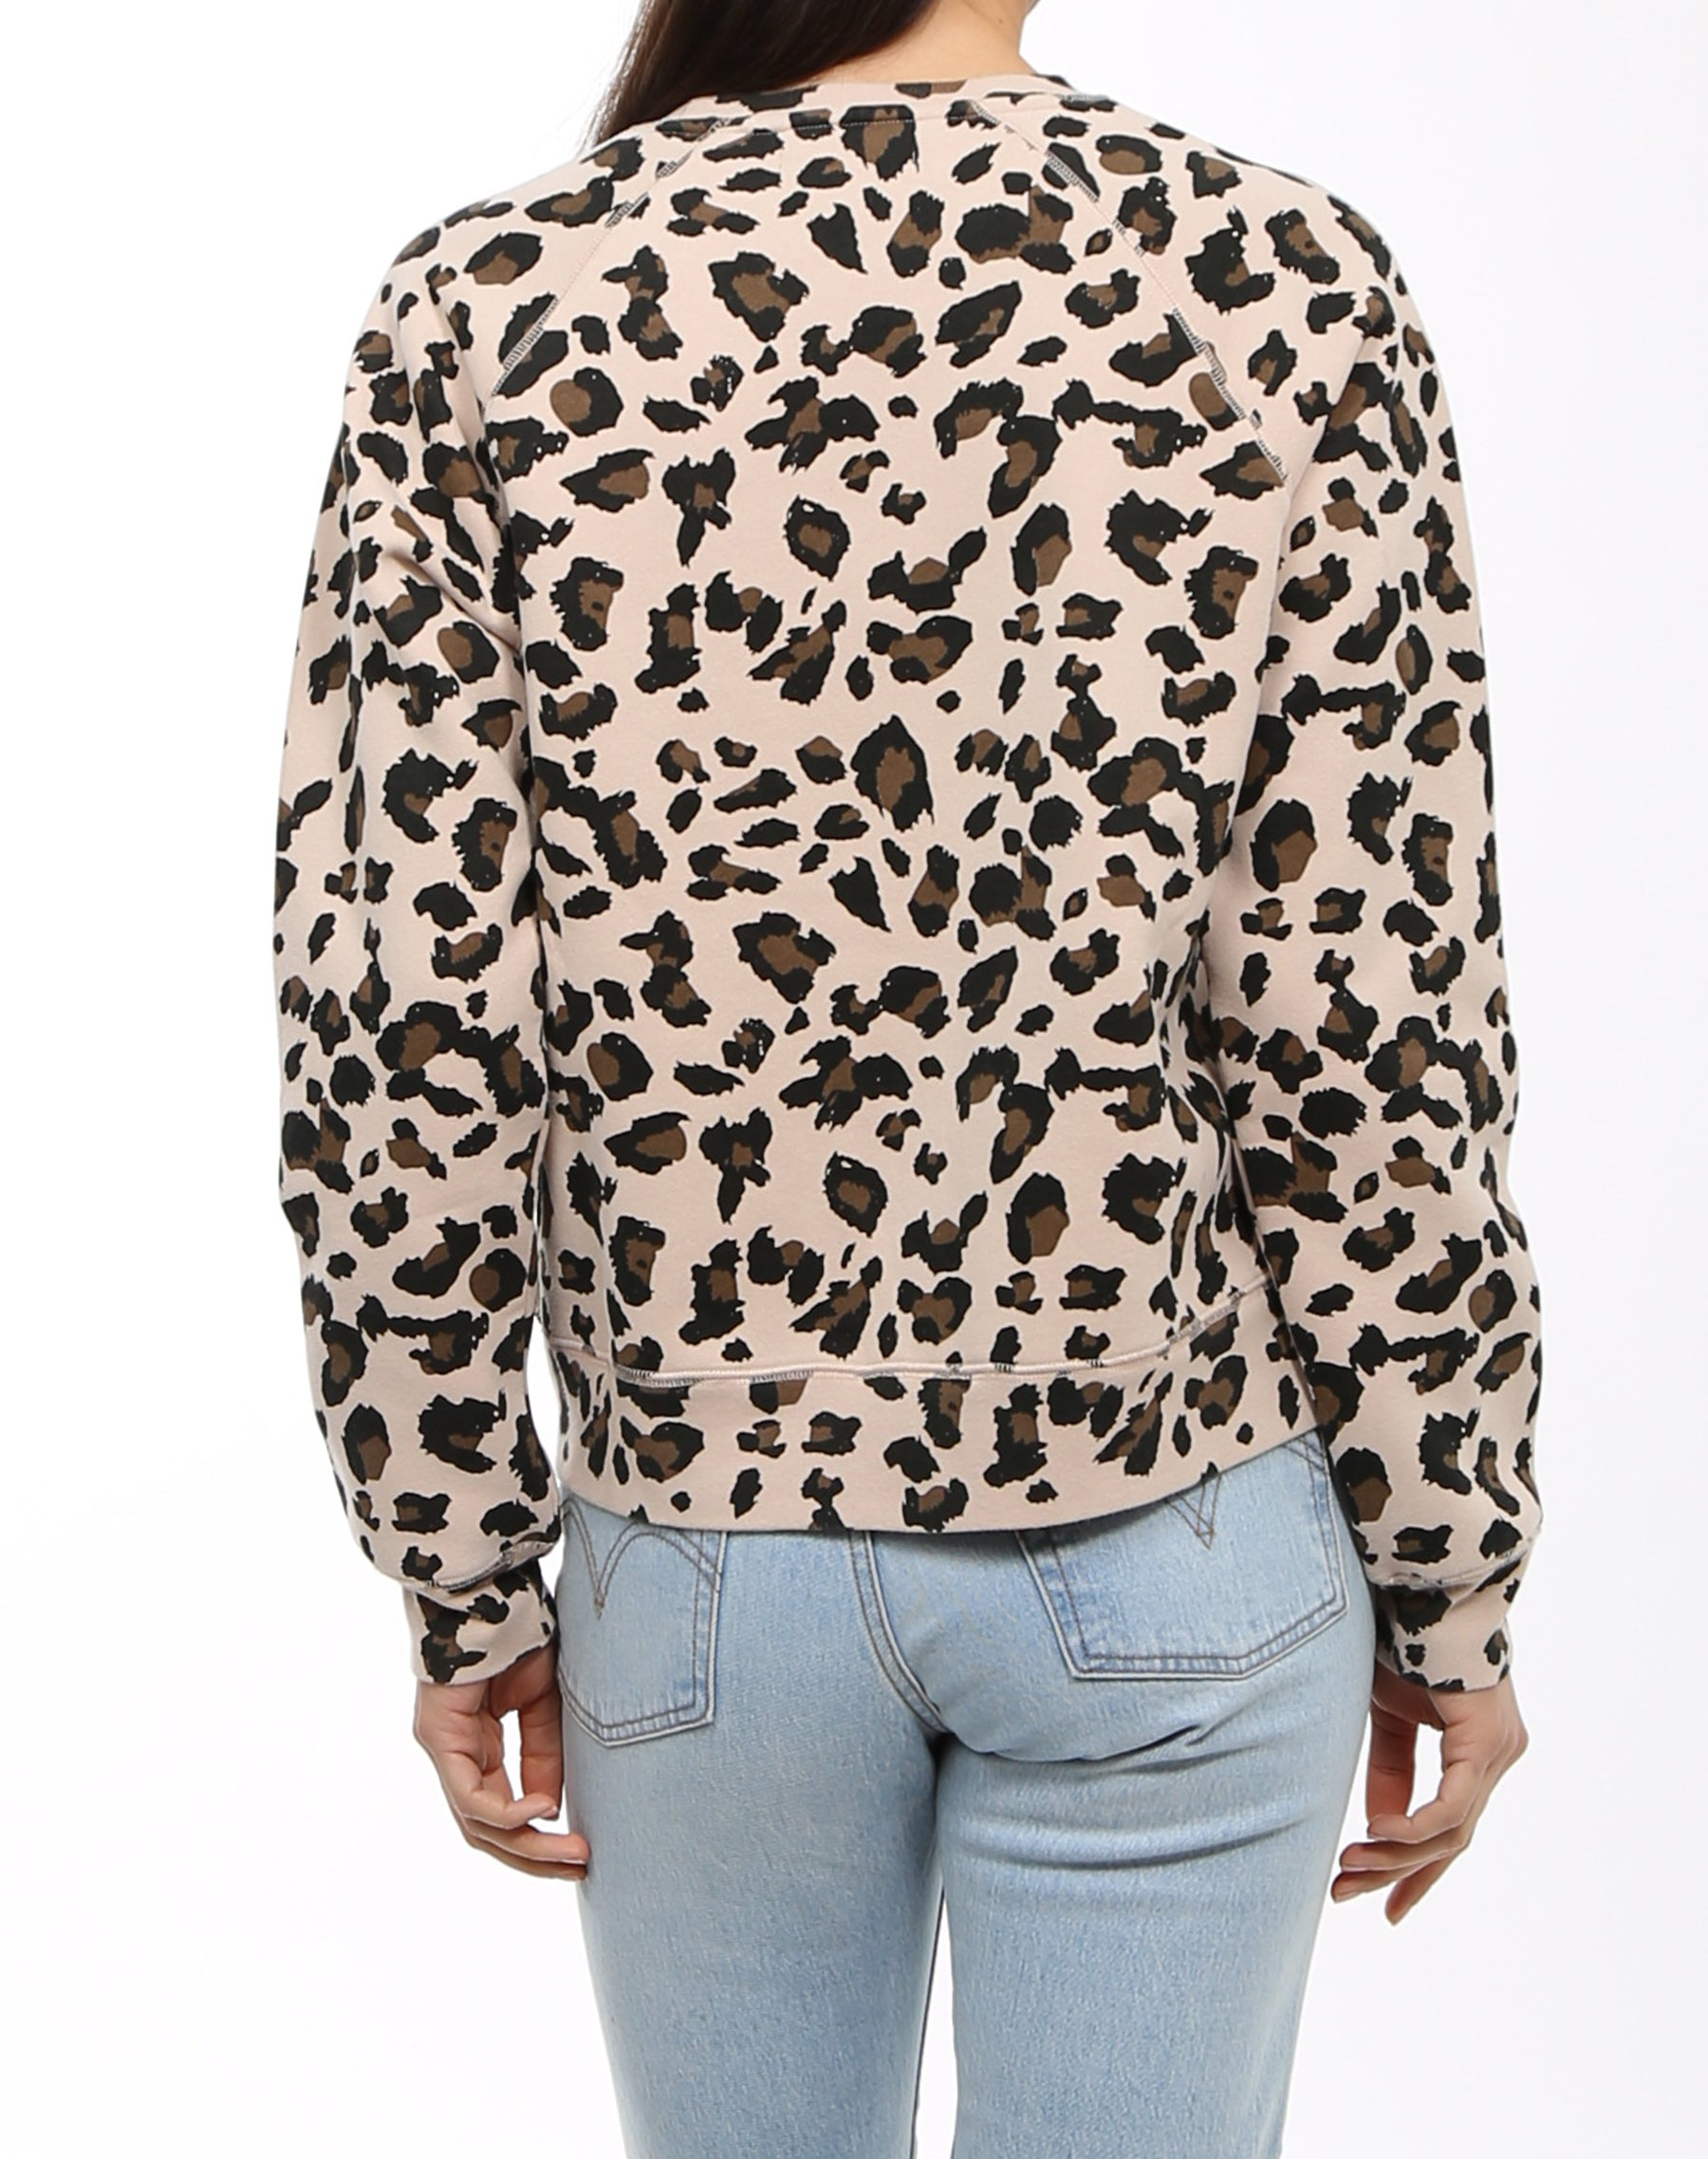 Photo of the back of the Brunette middle sister crew neck sweatshirt in leopard print by Brunette the Label.